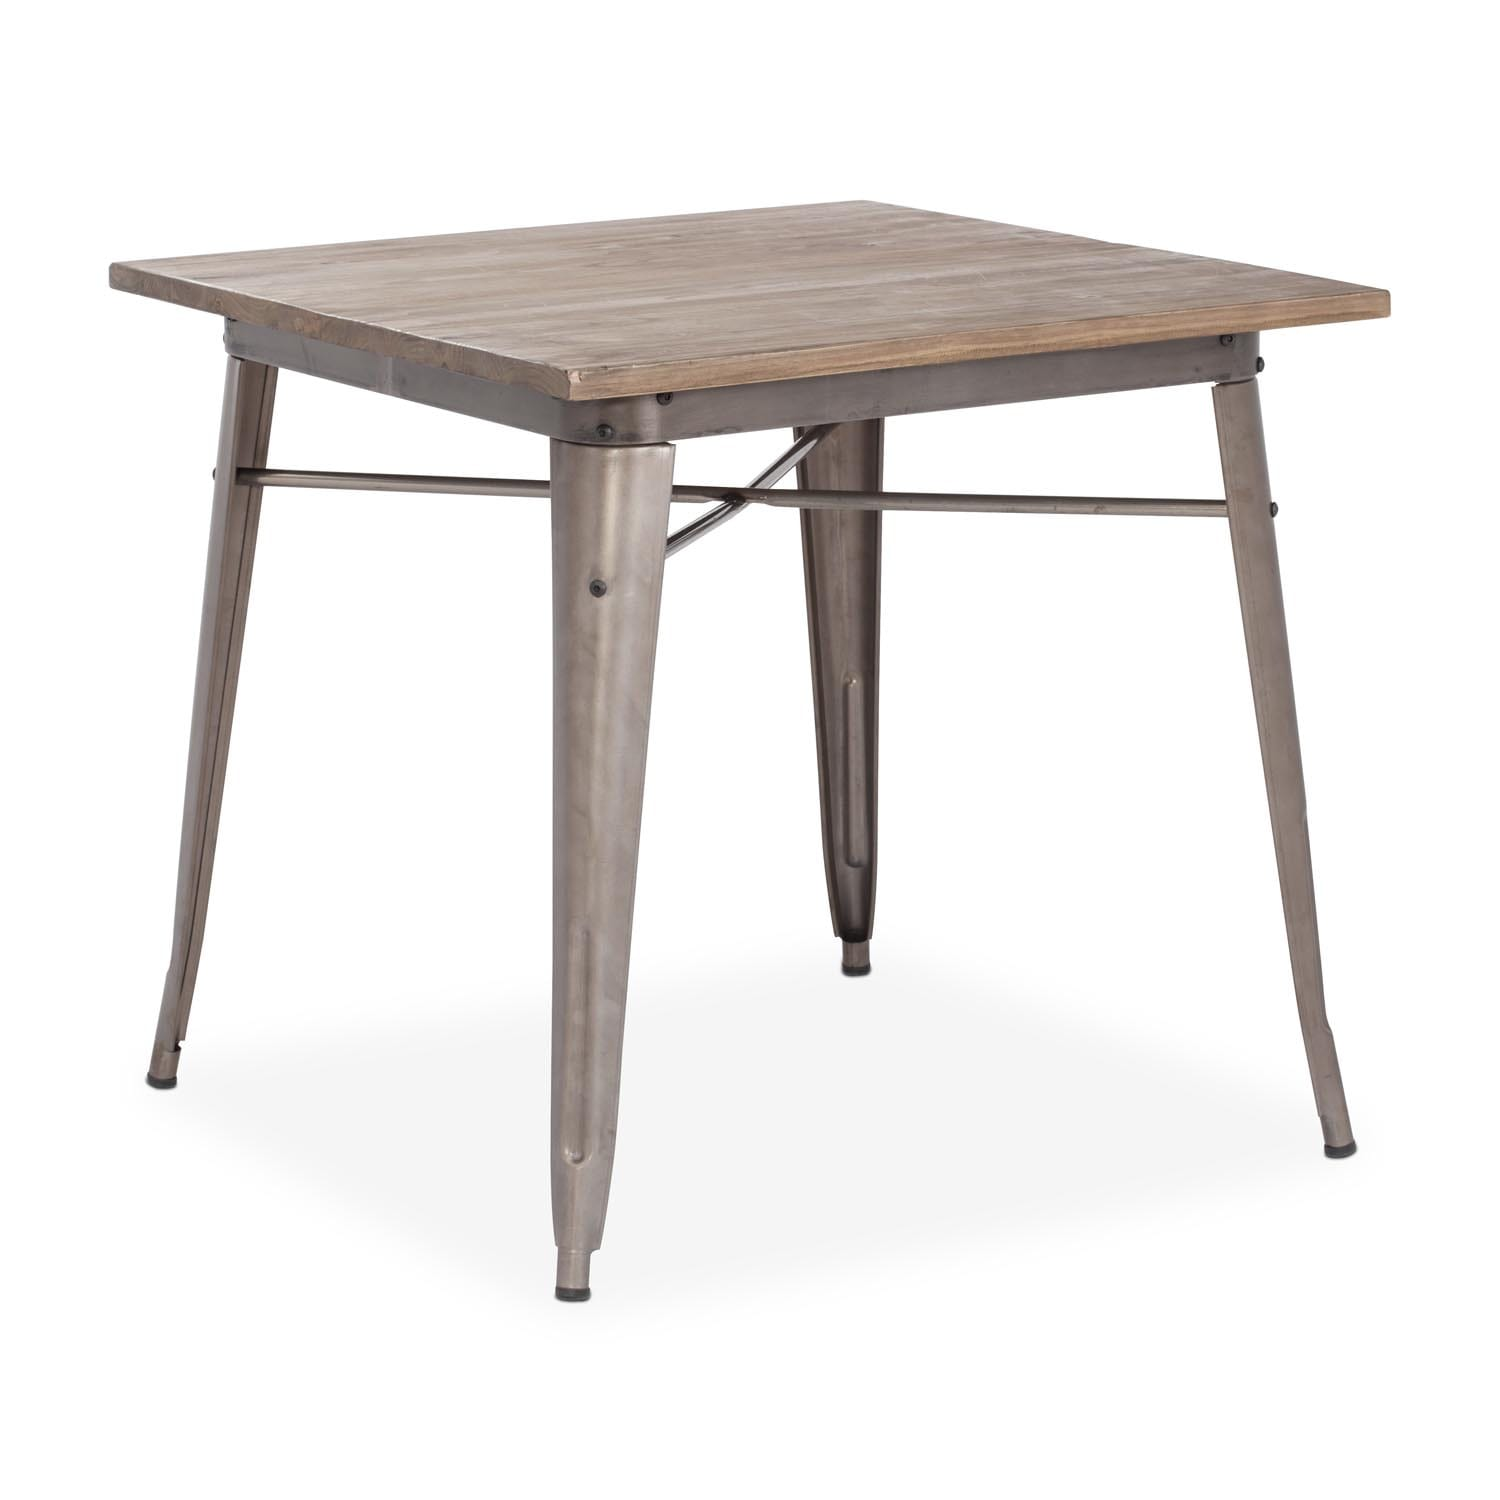 [Rustica Dining Table]